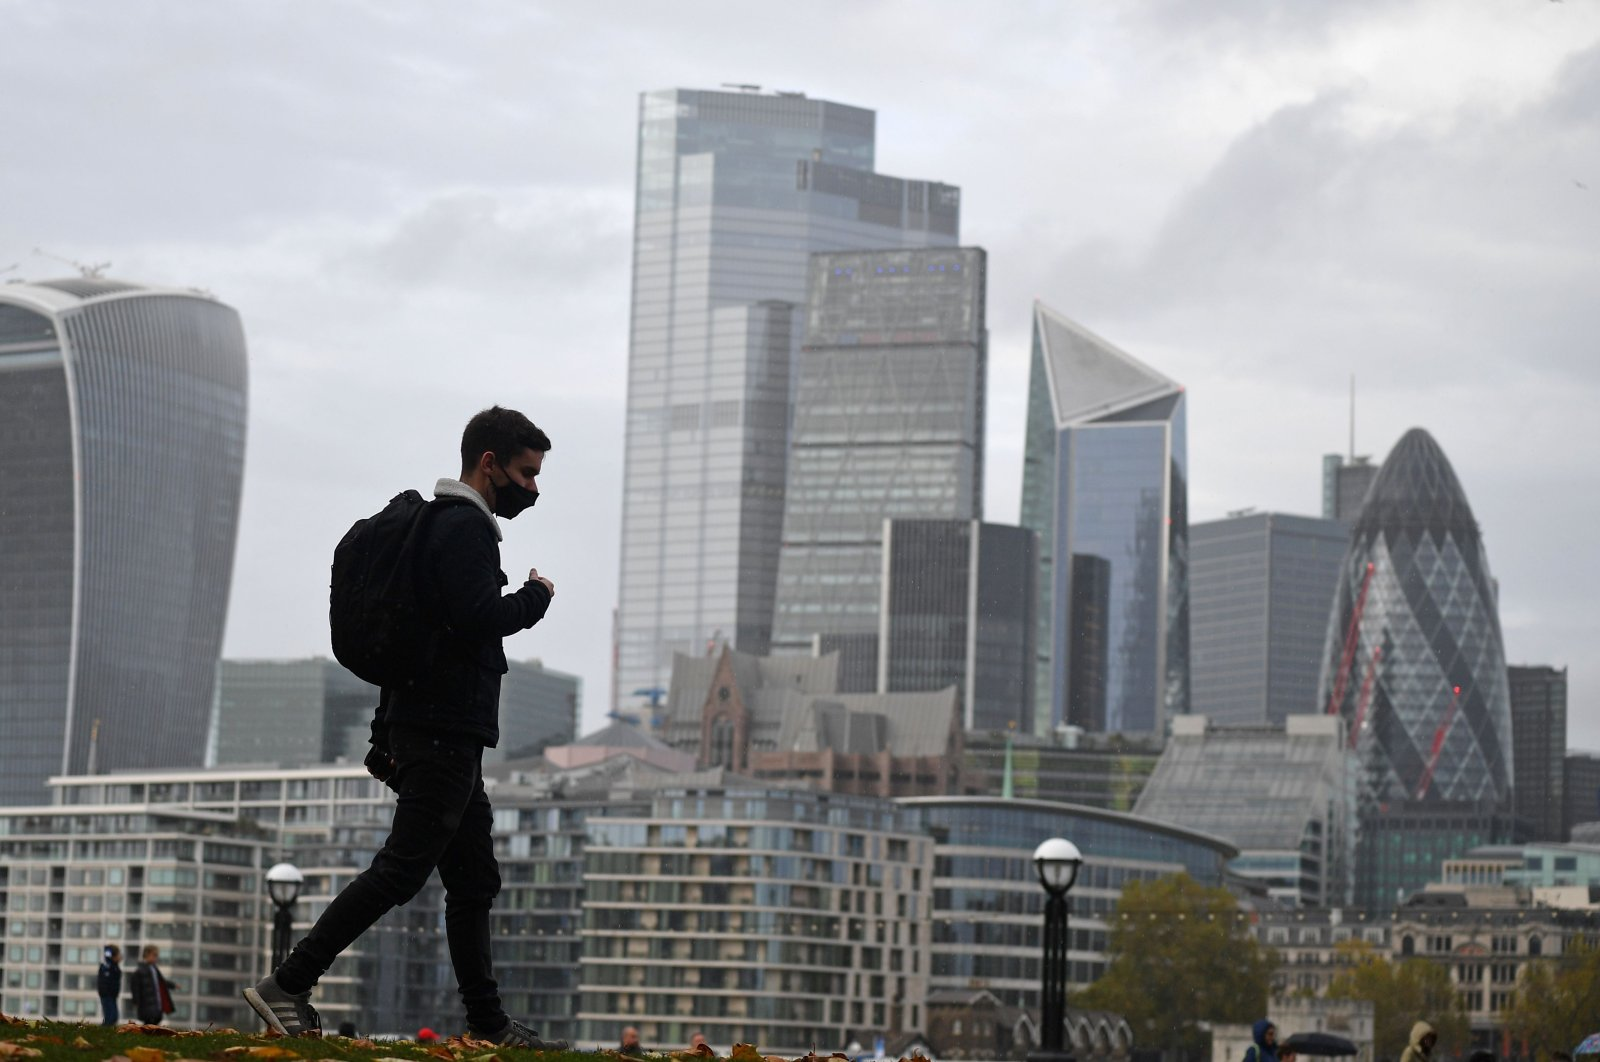 A man walks along the southern bank of the River Thames with the office towers of the City of London in the background, in London, Nov. 1, 2020. (AFP Photo)